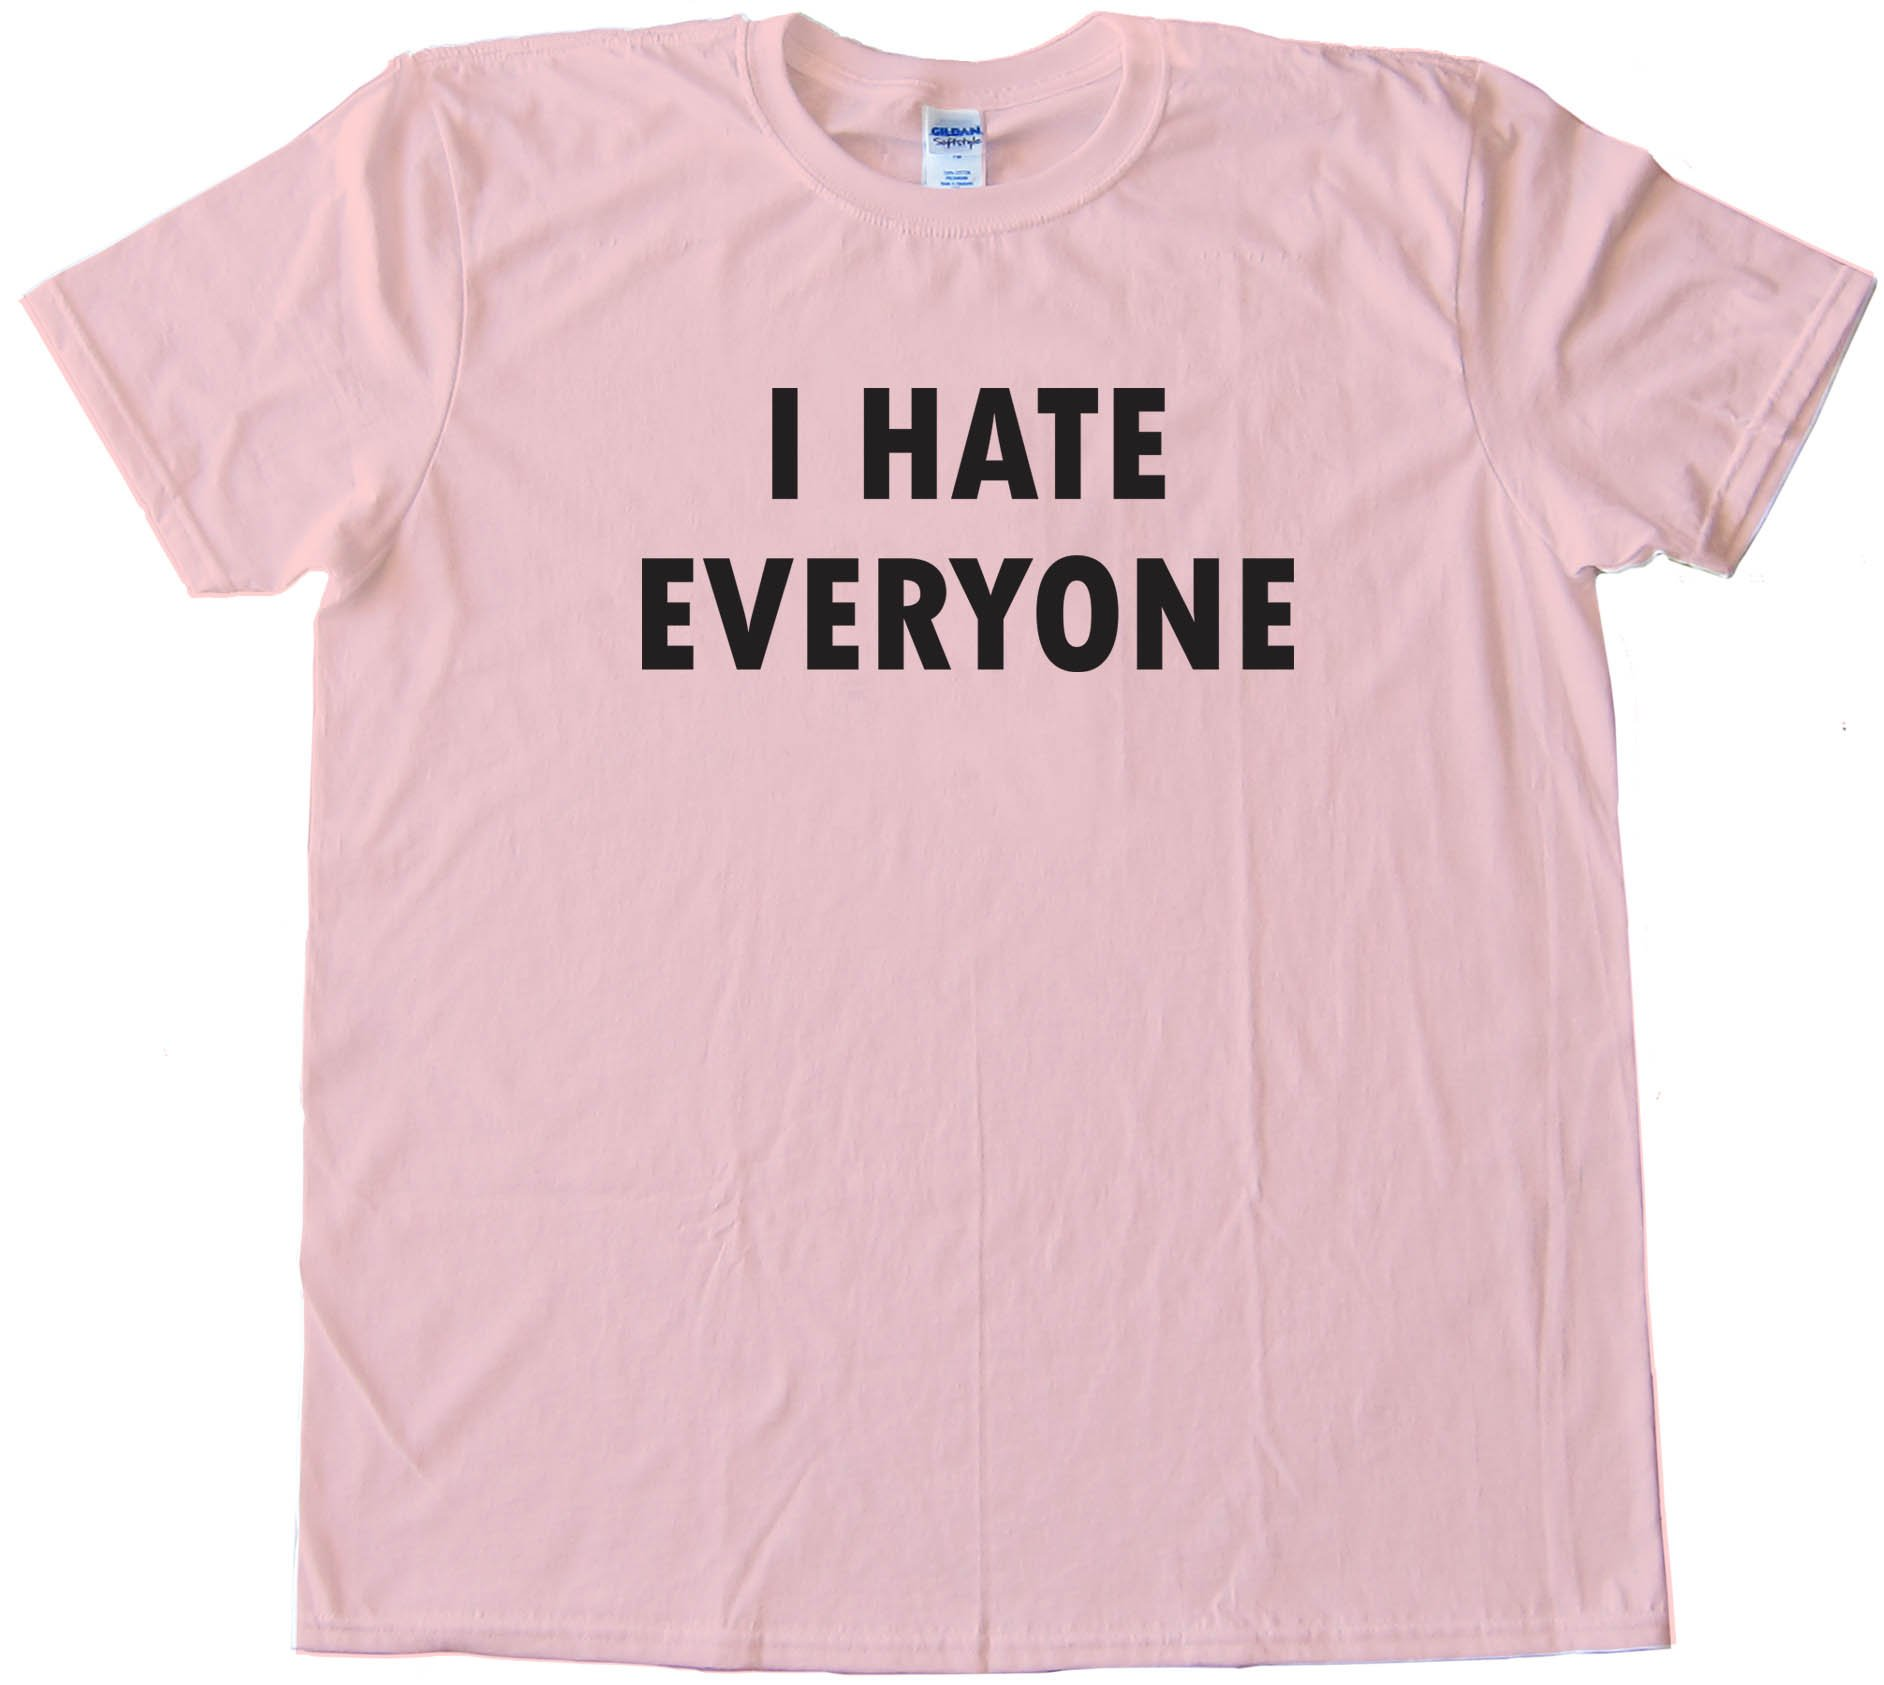 I Have Everyone - Tee Shirt